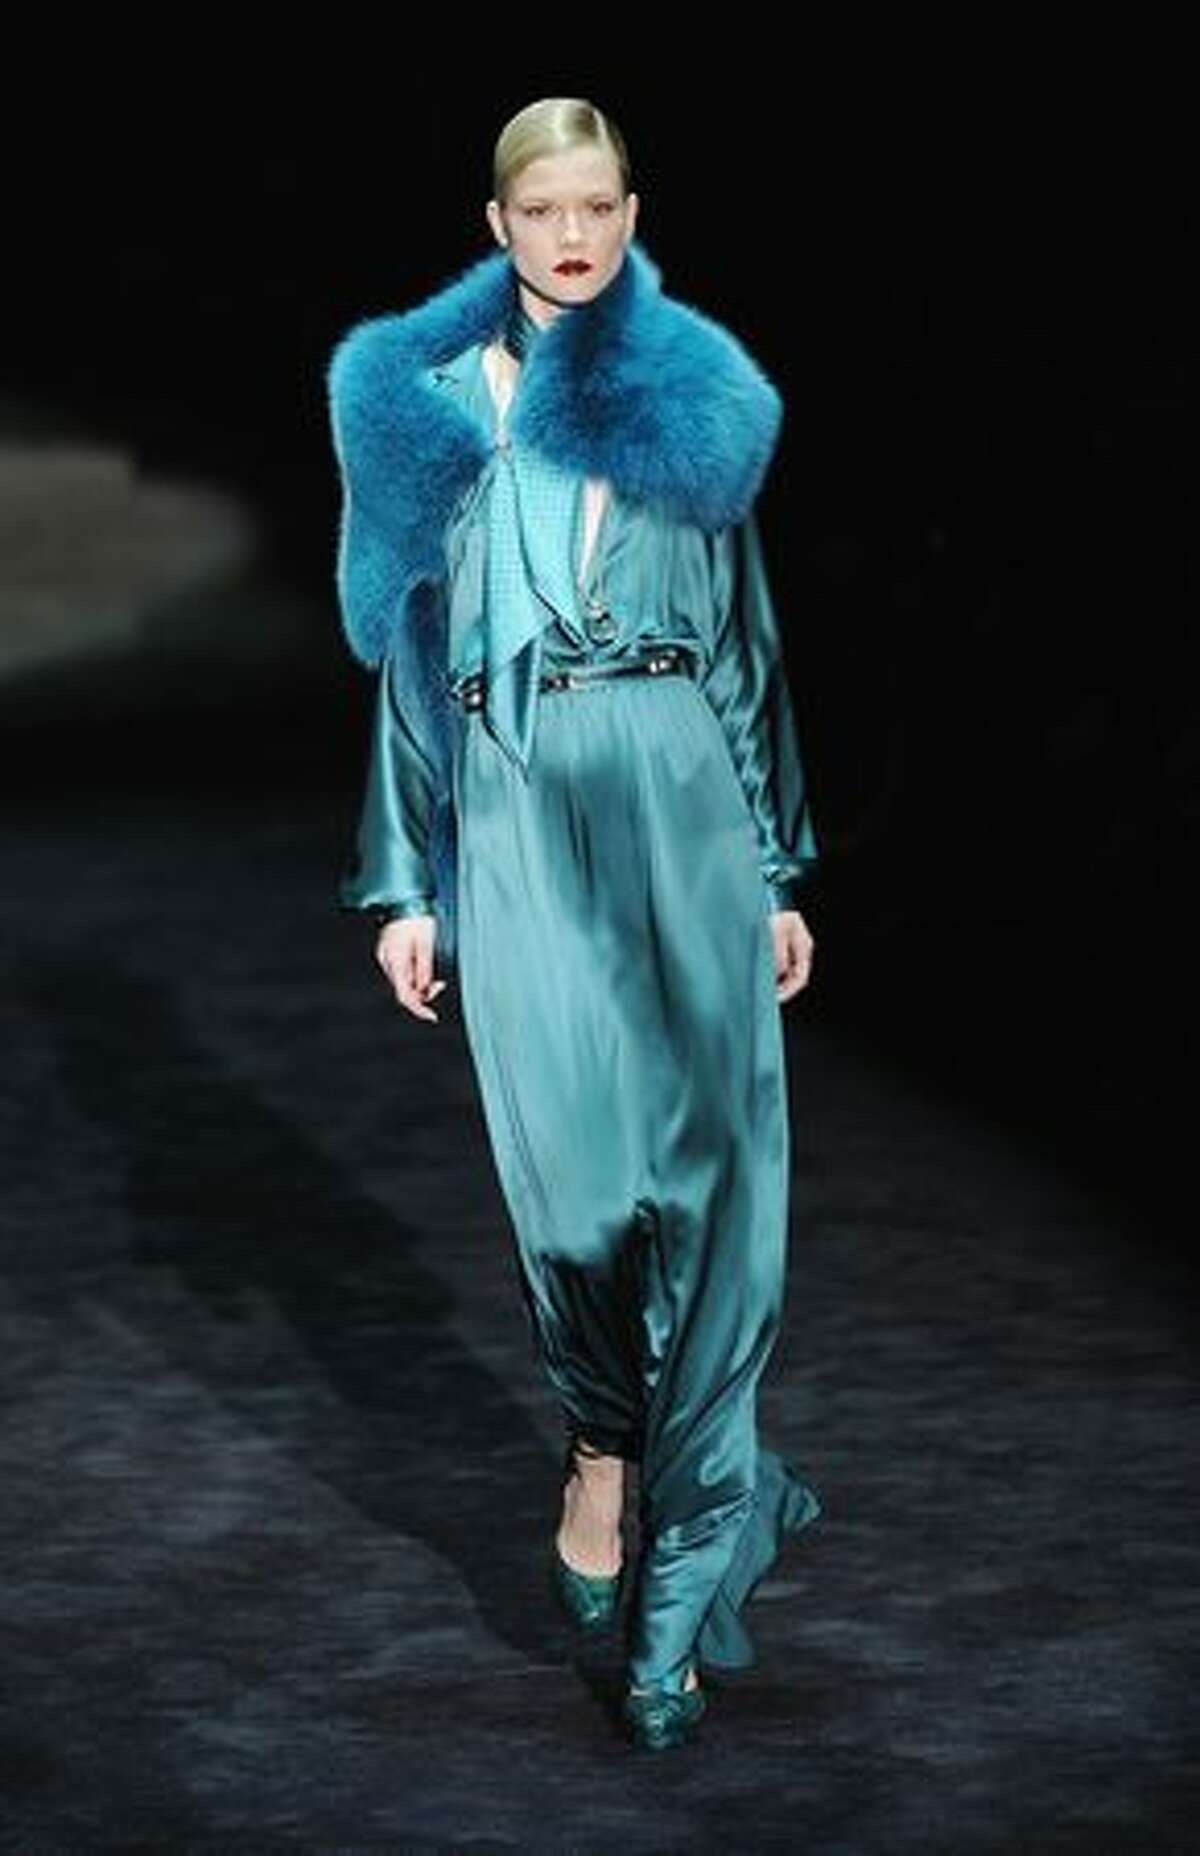 A model walks the runway during the Gucci Fashion Show as part of Milan Fashion Week Womenswear Autumn/Winter 2011on February 23, 2011 in Milan, Italy.